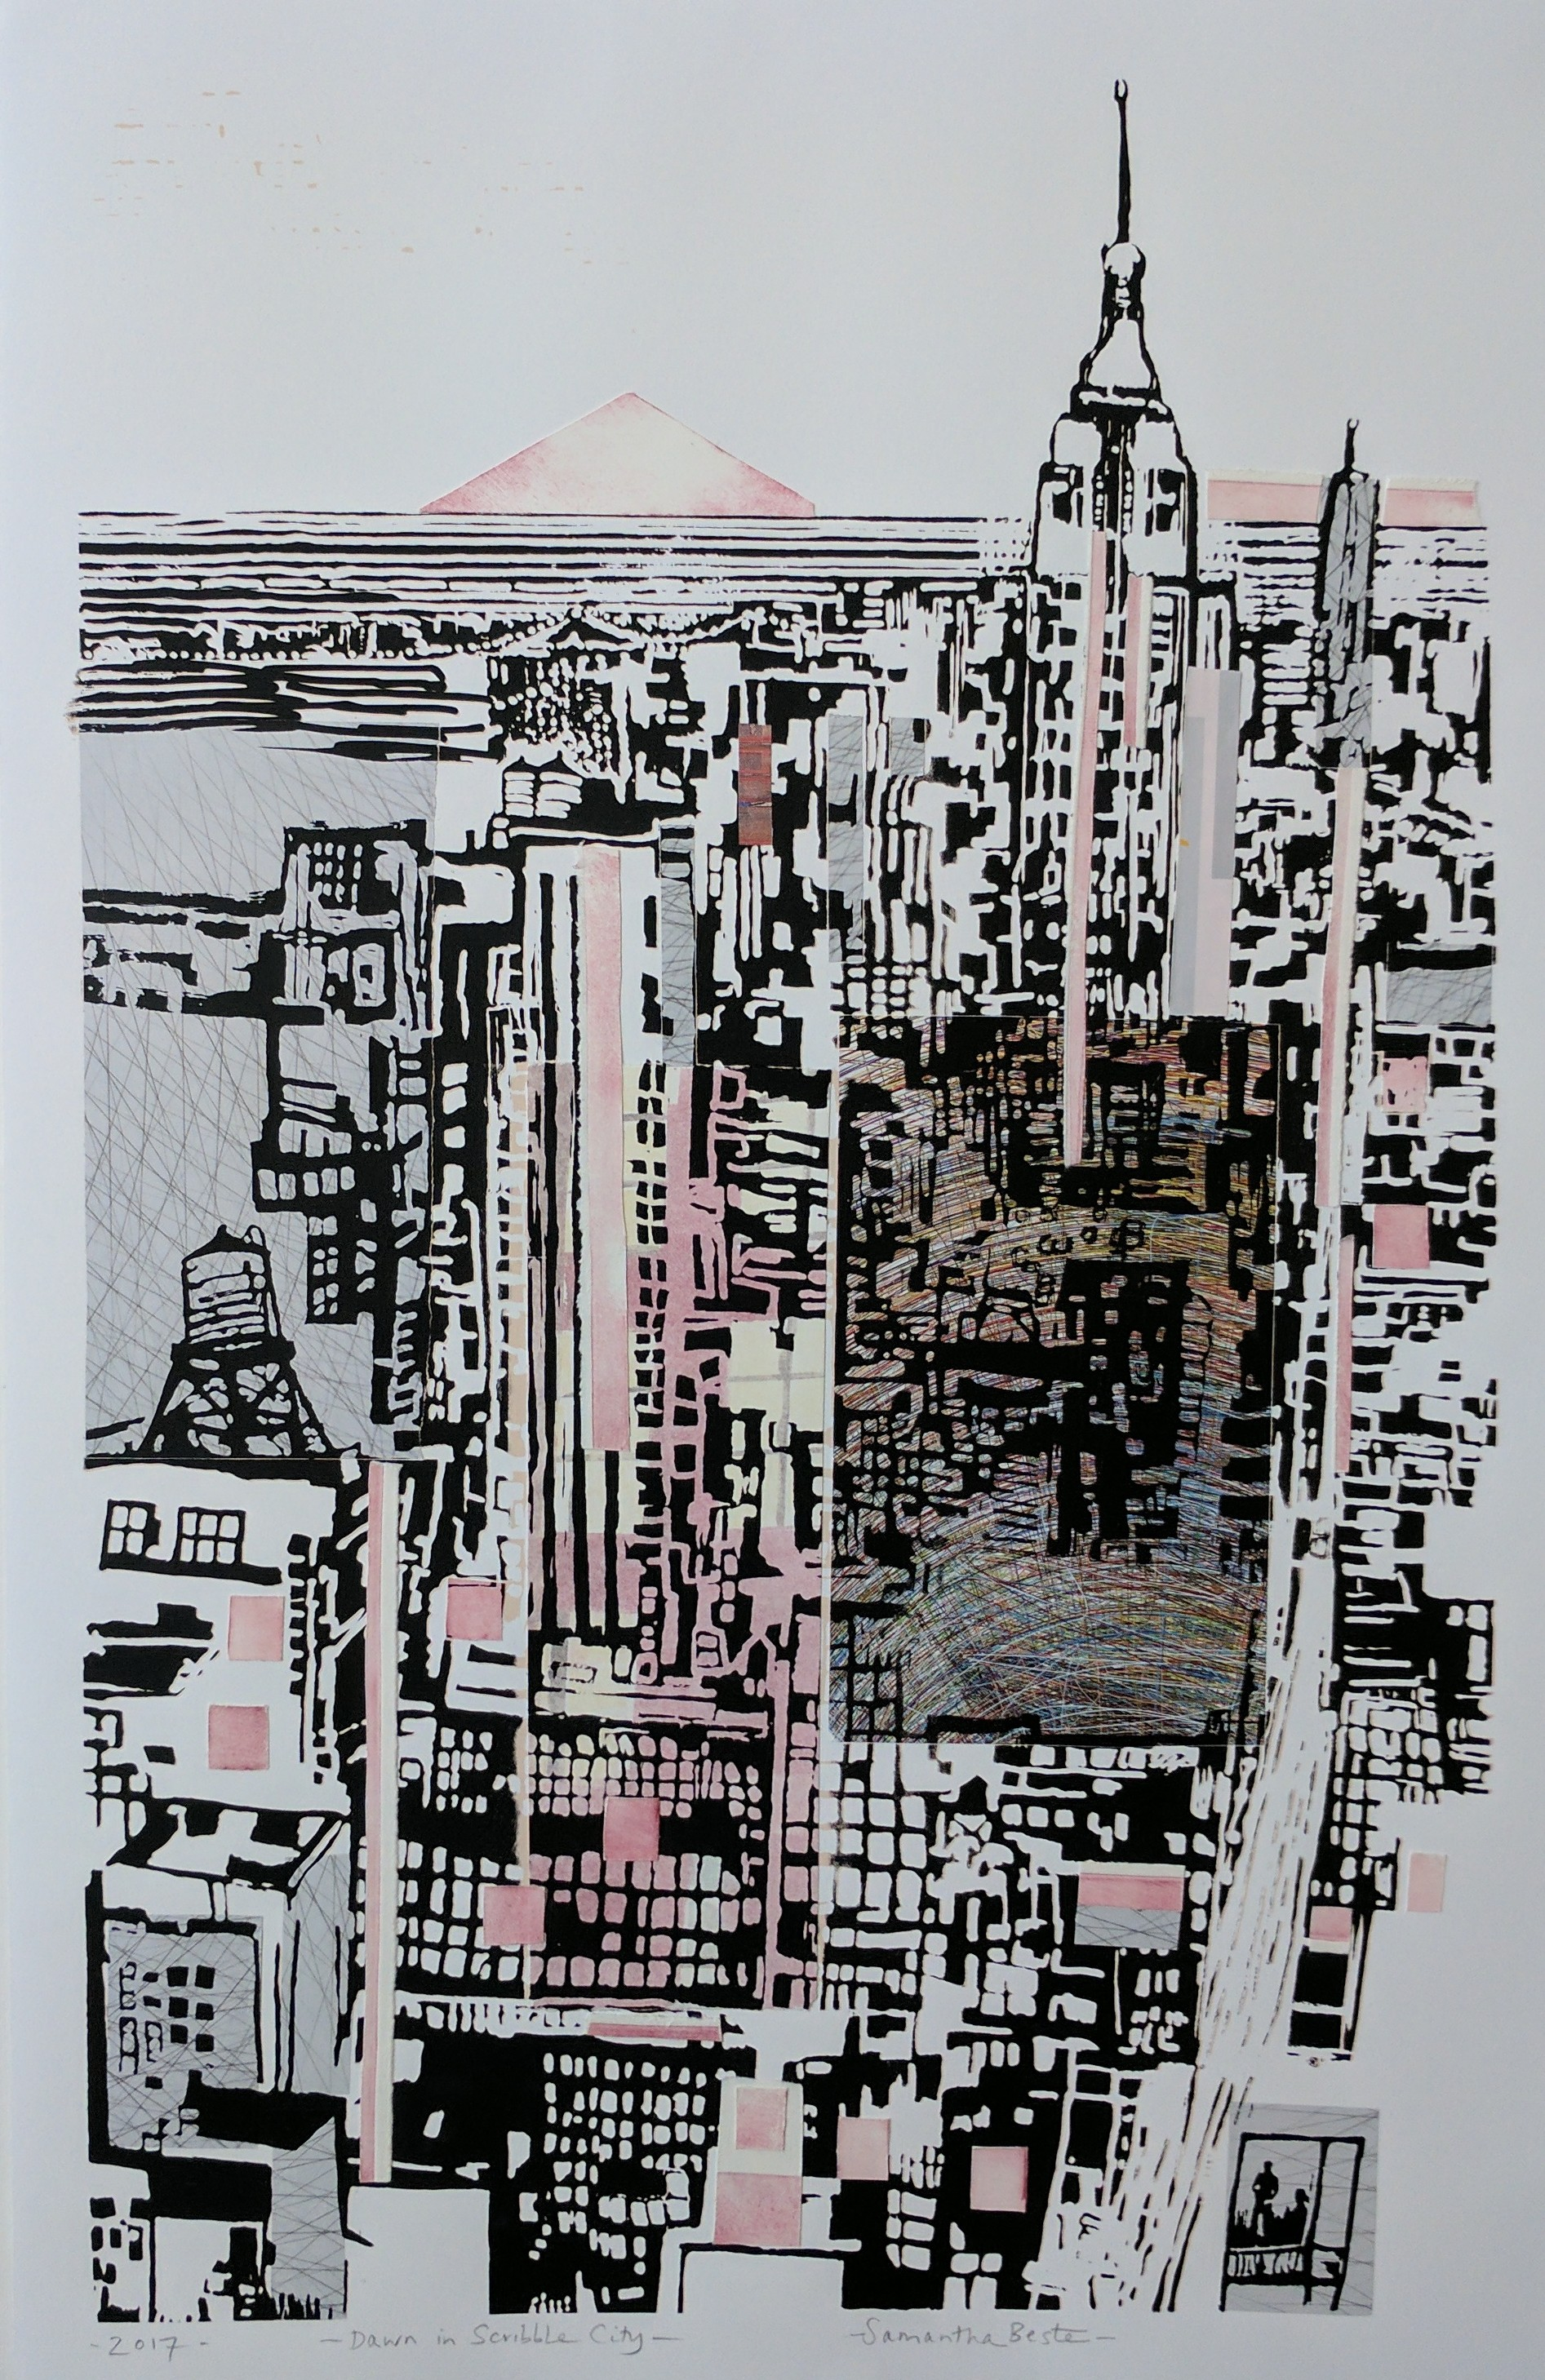 """Dawn in Scribble City, serigraph/collage, 20""""x30"""""""